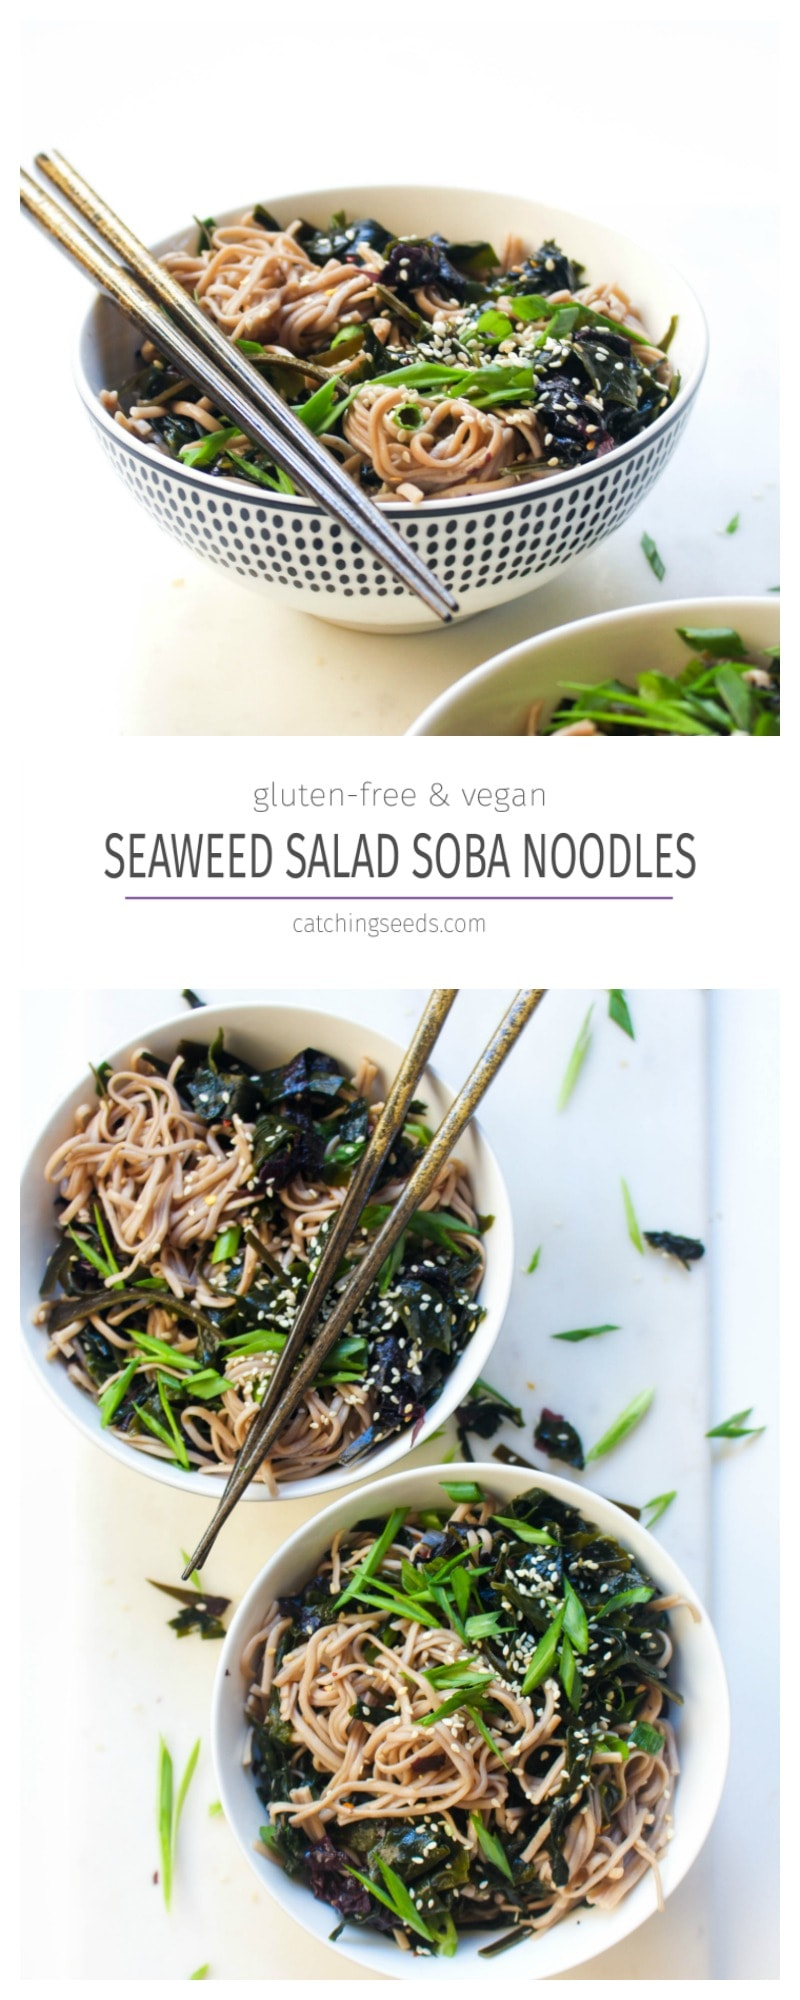 All the flavors of seaweed salad from your favorite joint for dinner in under 30 minutes. Winning.